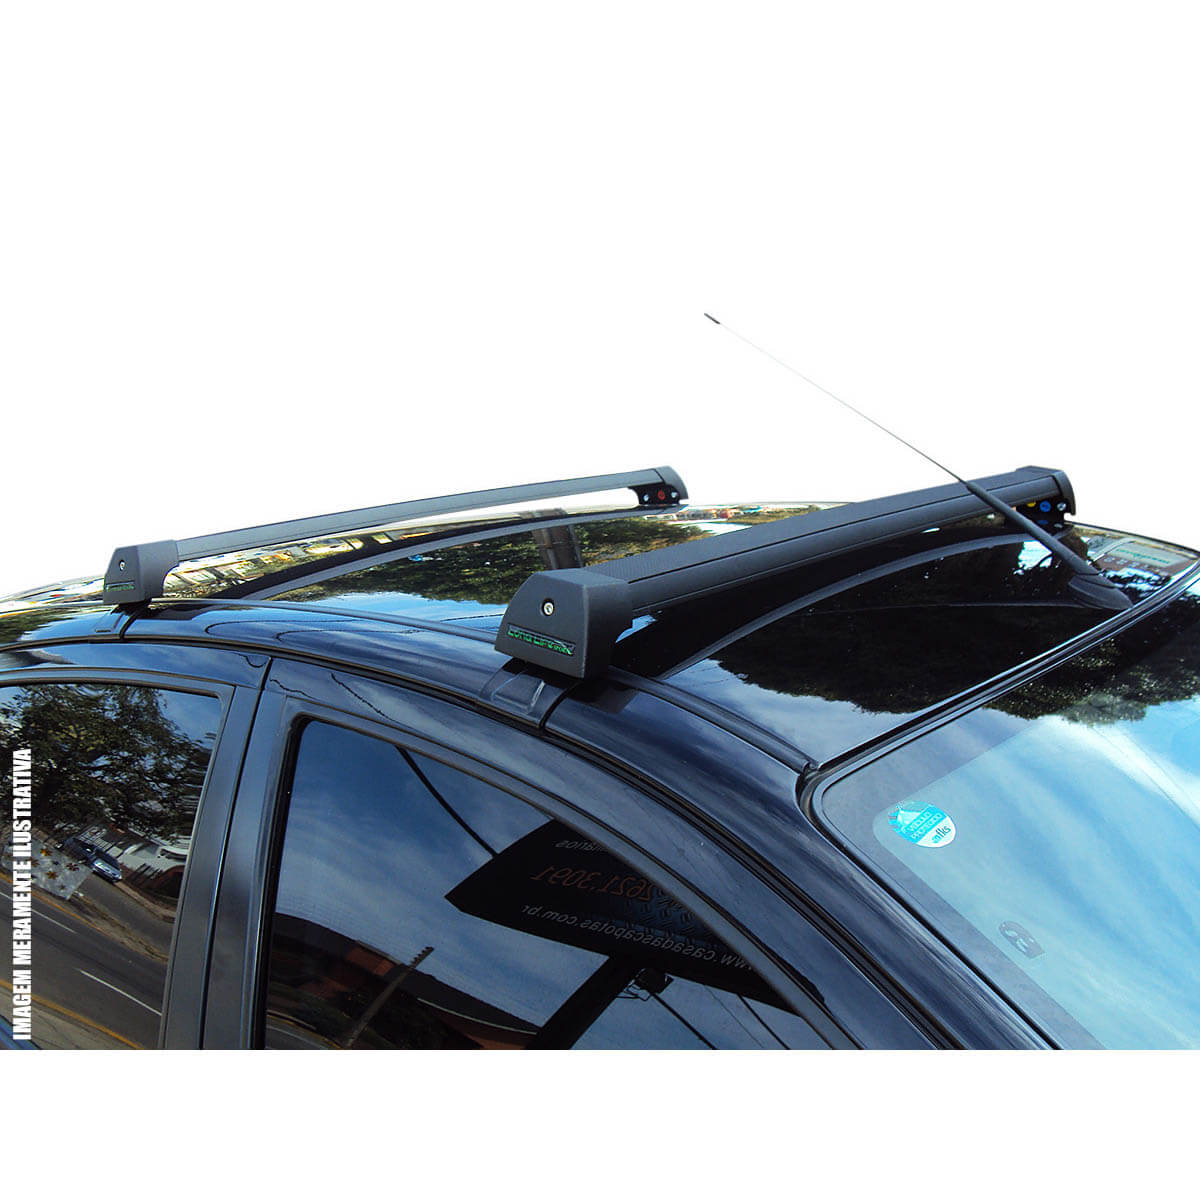 Rack de teto Long Life Sports preto Ka 2008 a 2013